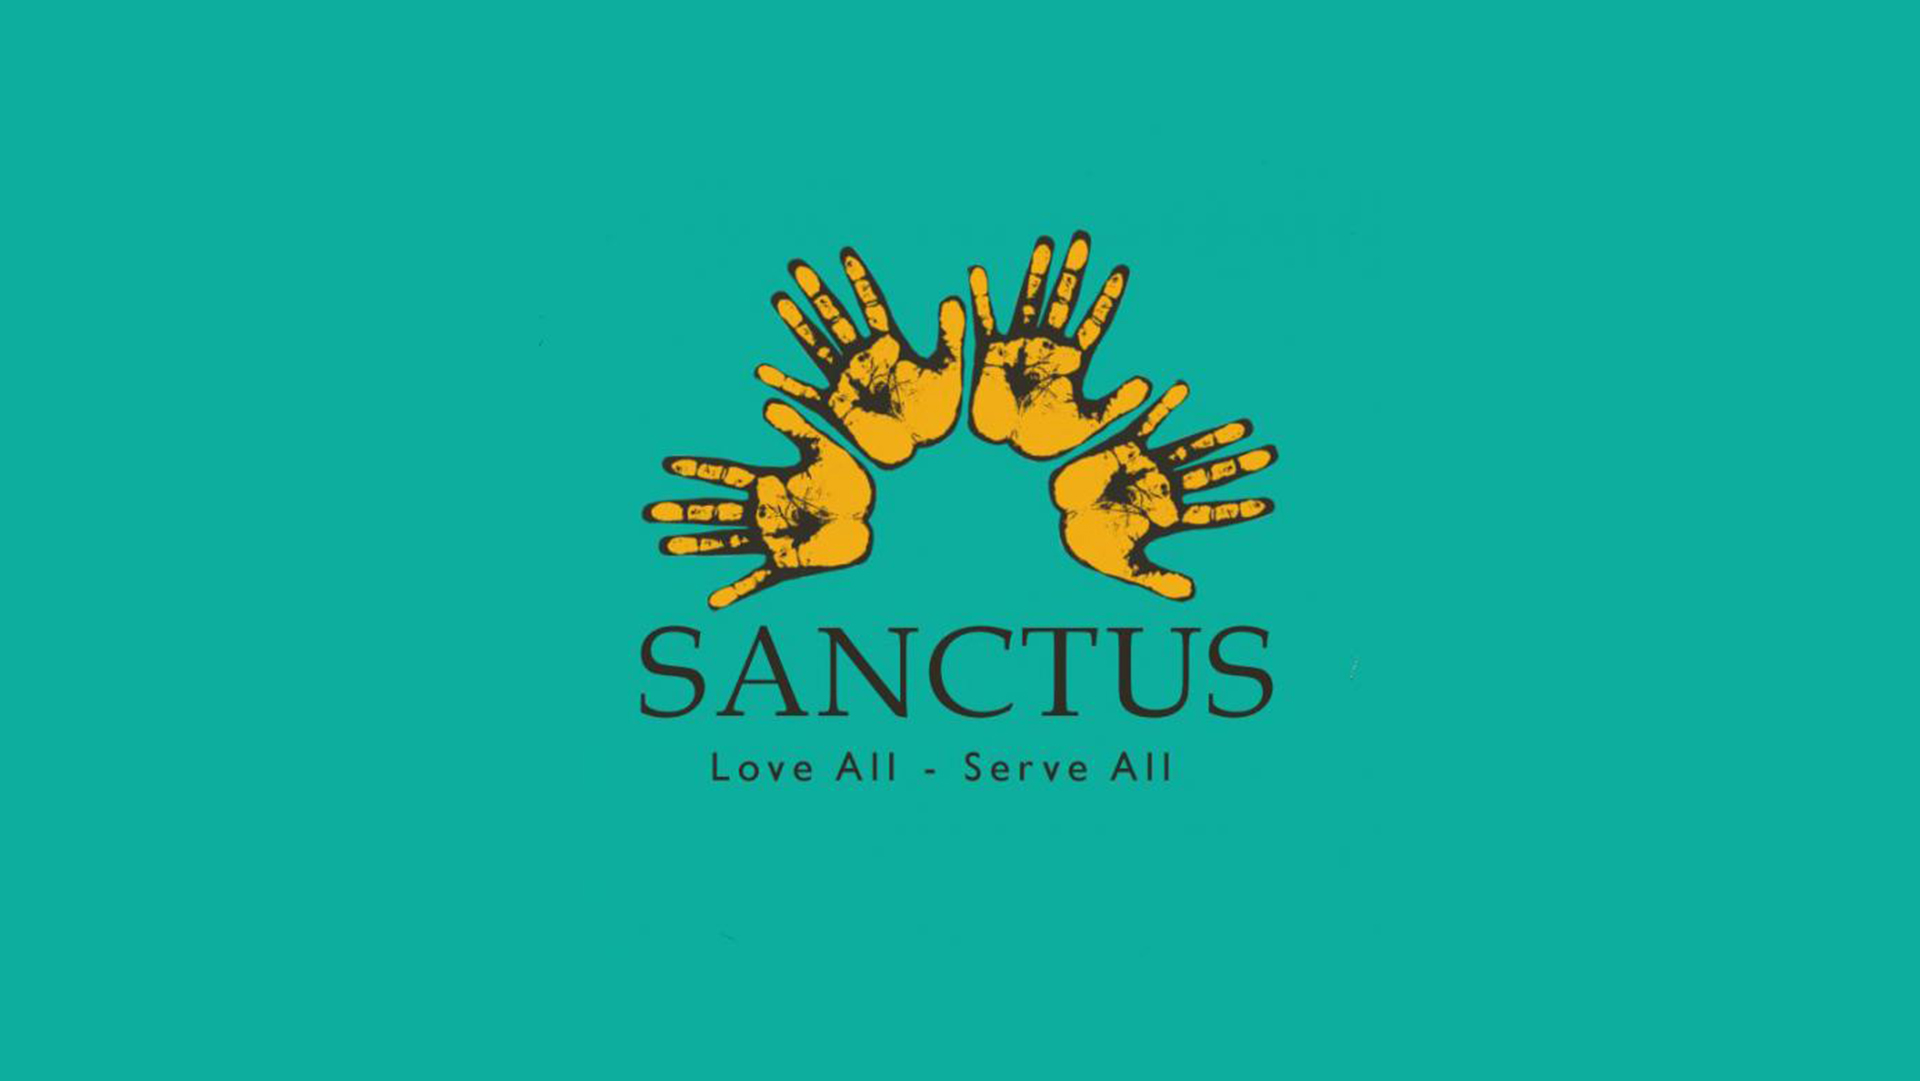 We visited Sanctus Homeless Charity